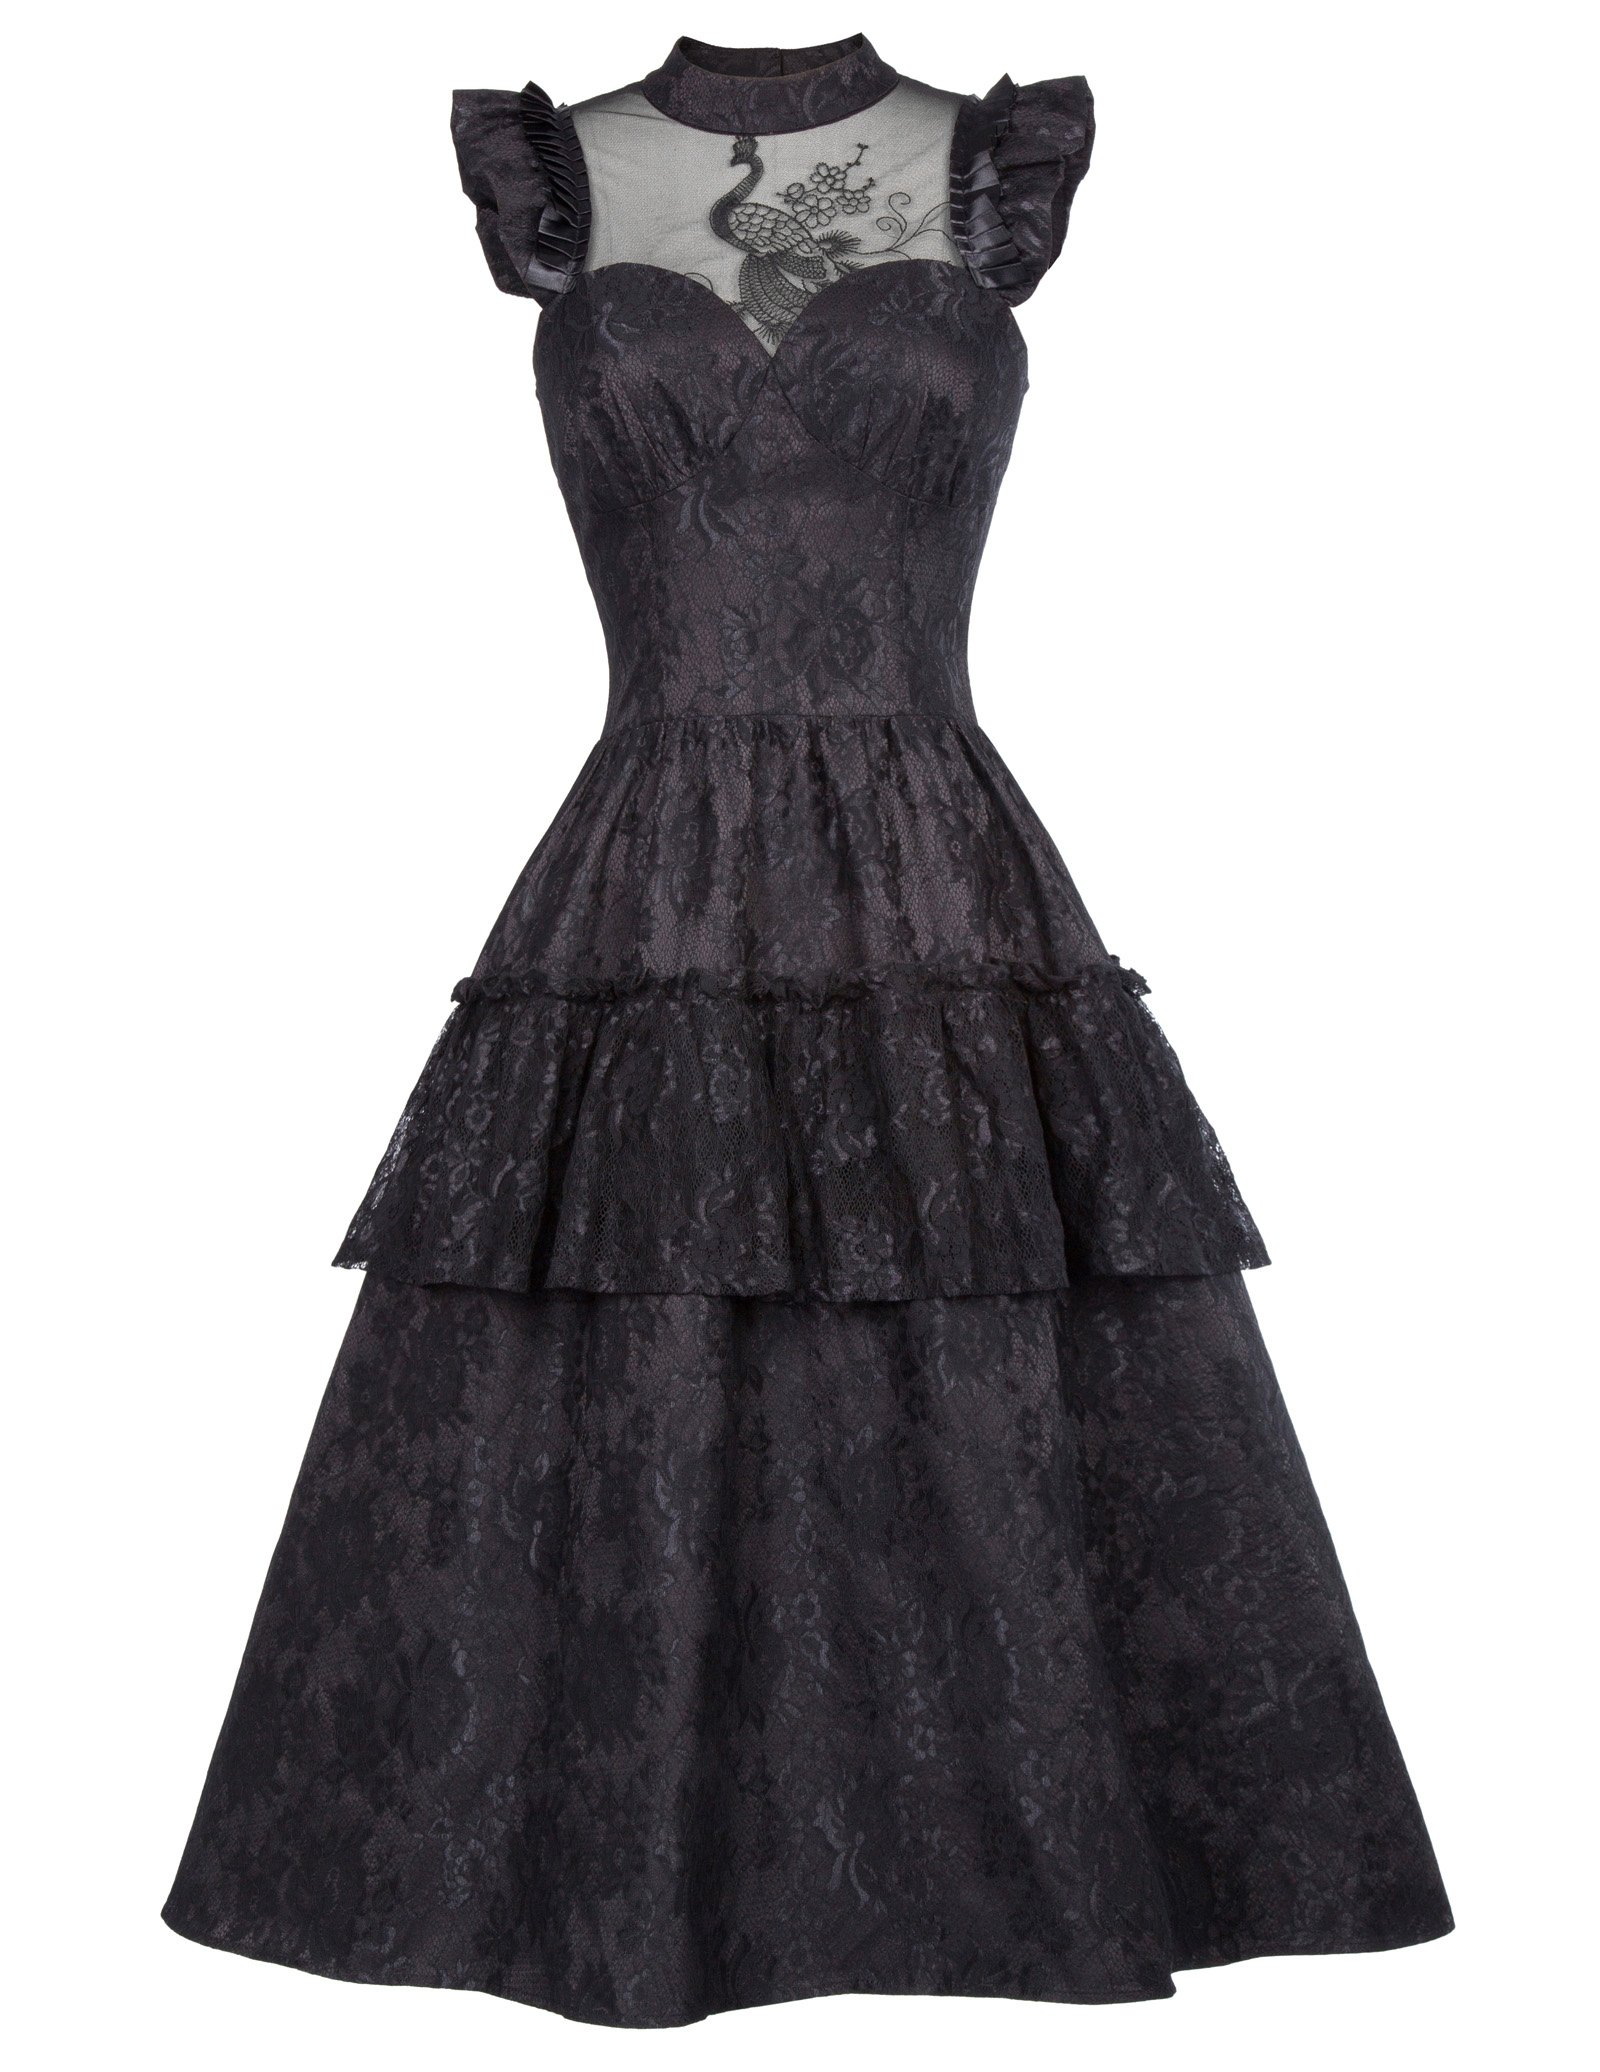 Belle Poque Women Black Victorian Gothic Steampunk Maxi Dress for Party BP380-1 XL